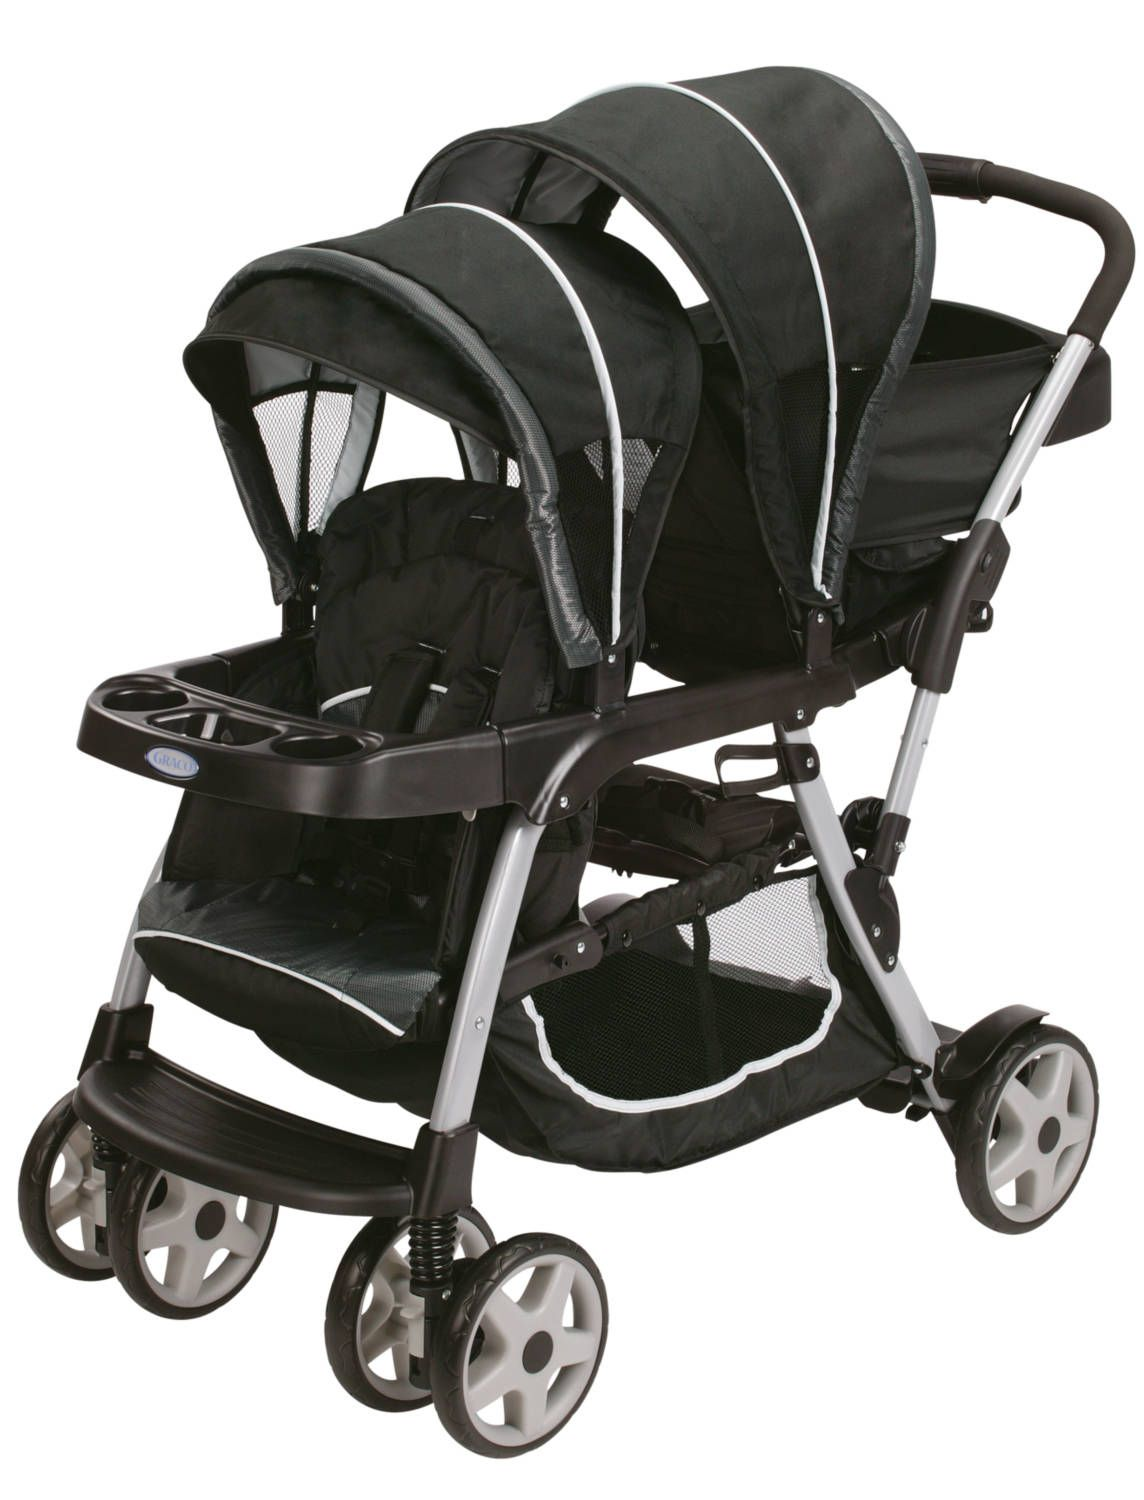 Graco Tandem Stroller Strollers 2017 Wonderful Graco